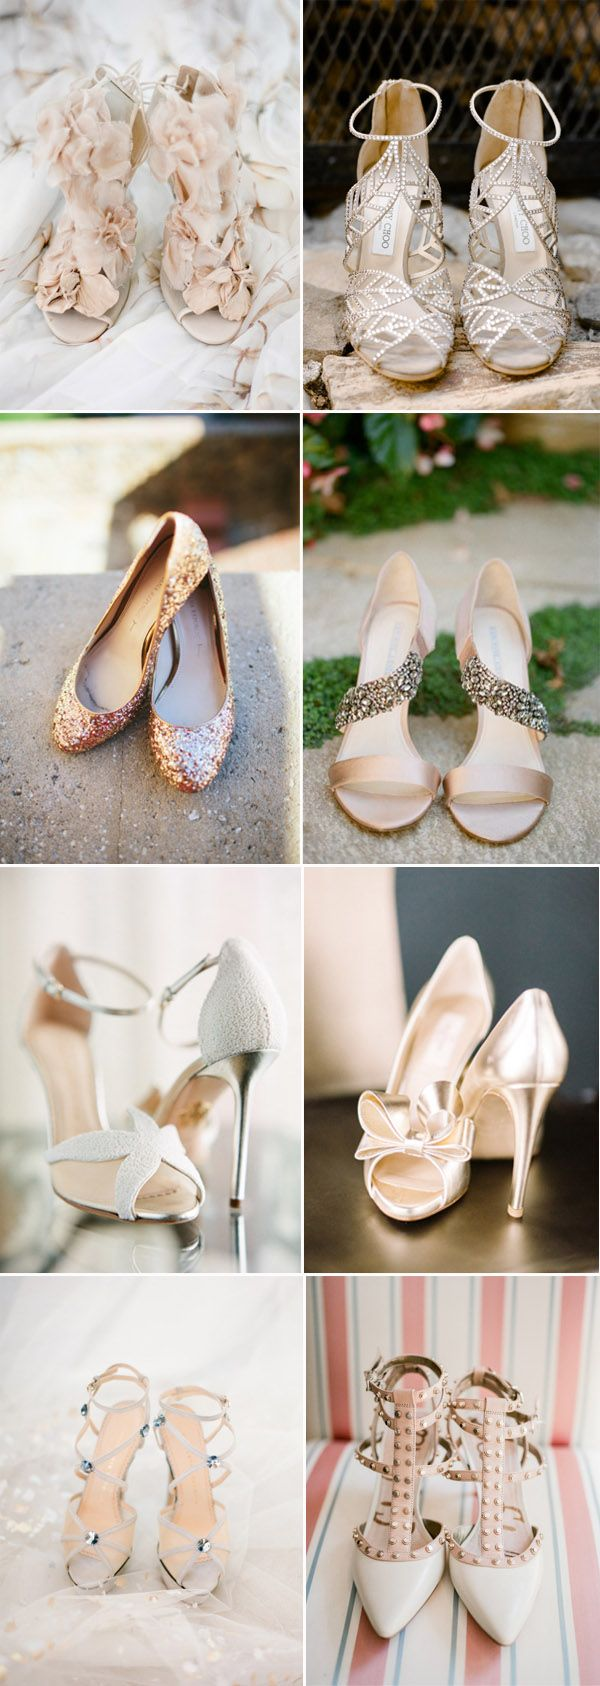 unique wedding shoes best wedding shoes detailed elegant wedding shoes photo ideas for the big day